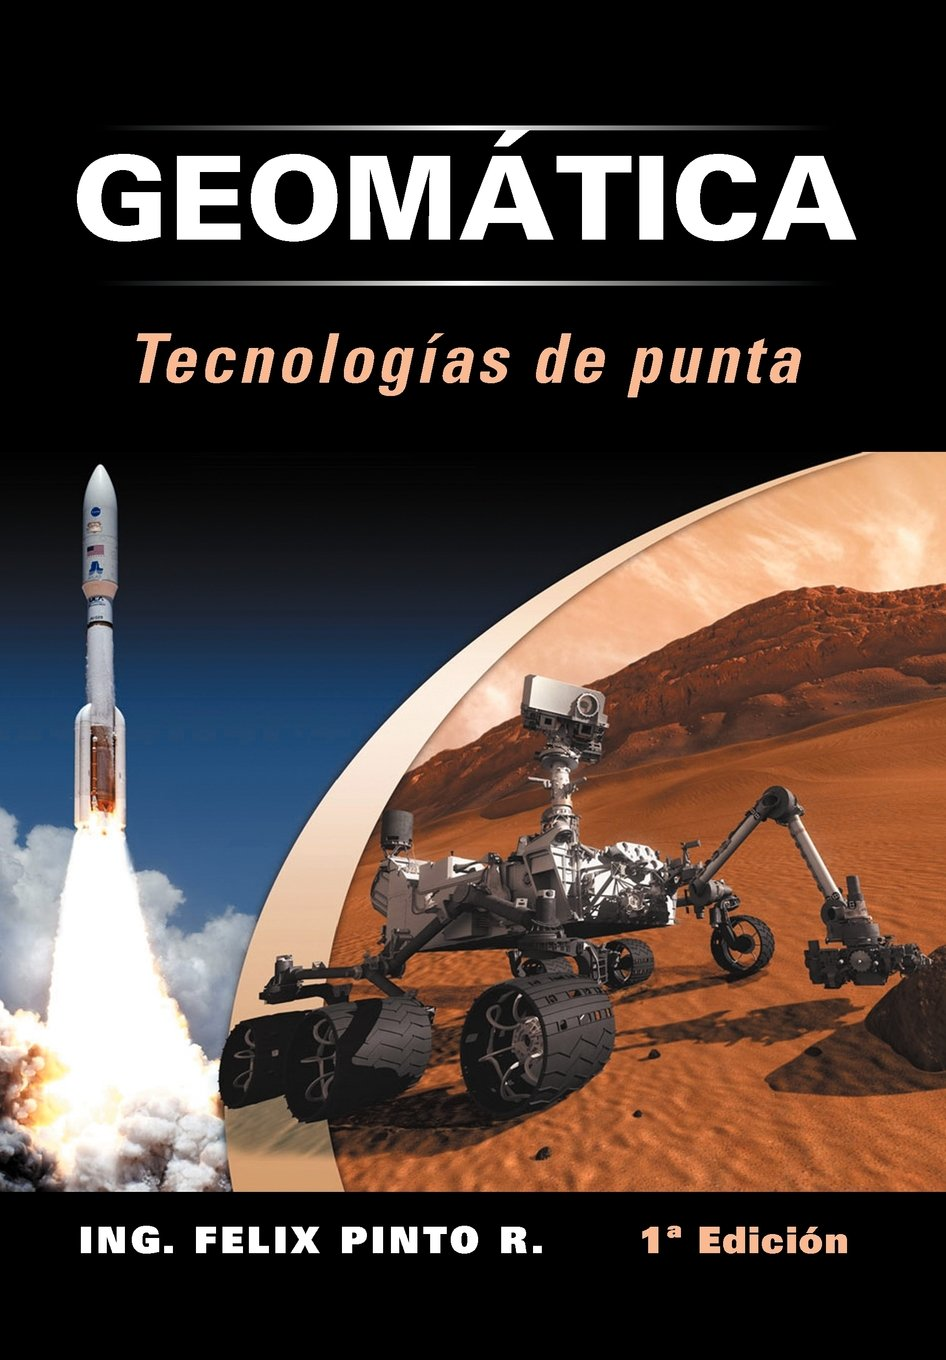 Download Geomatica Tecnologias de Punta: 1 Edicion (Spanish Edition) ebook